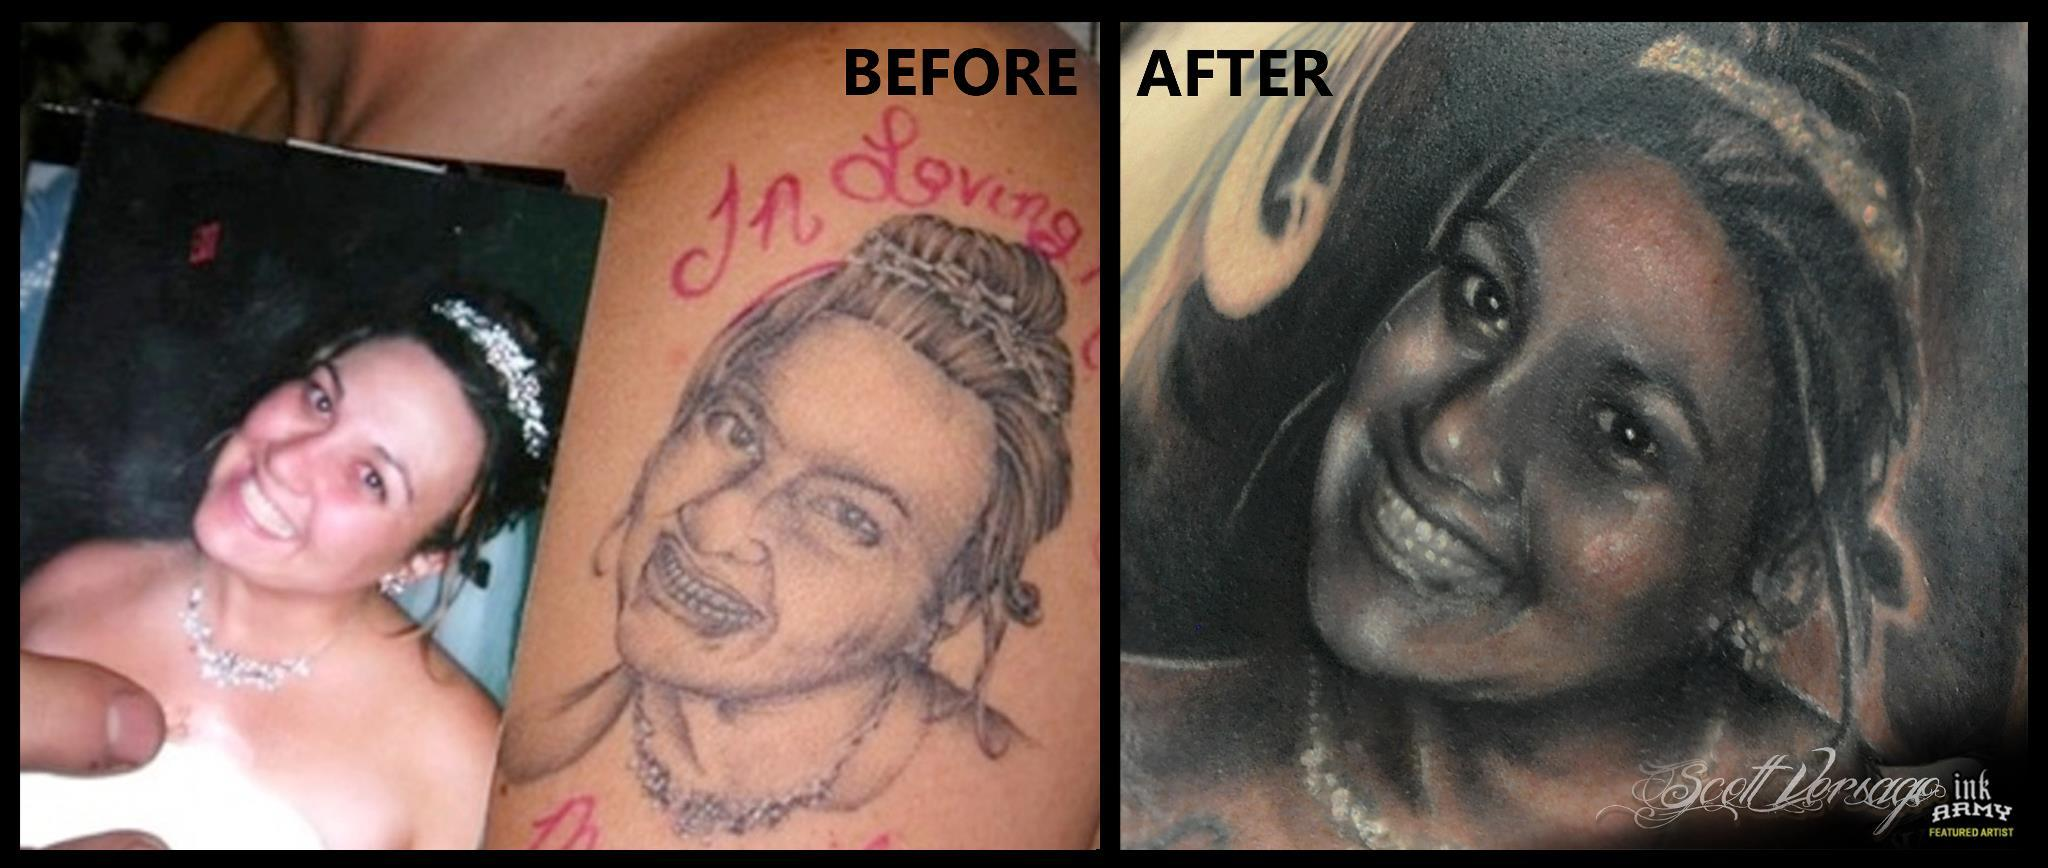 worlds worst portrait tattoo fixed